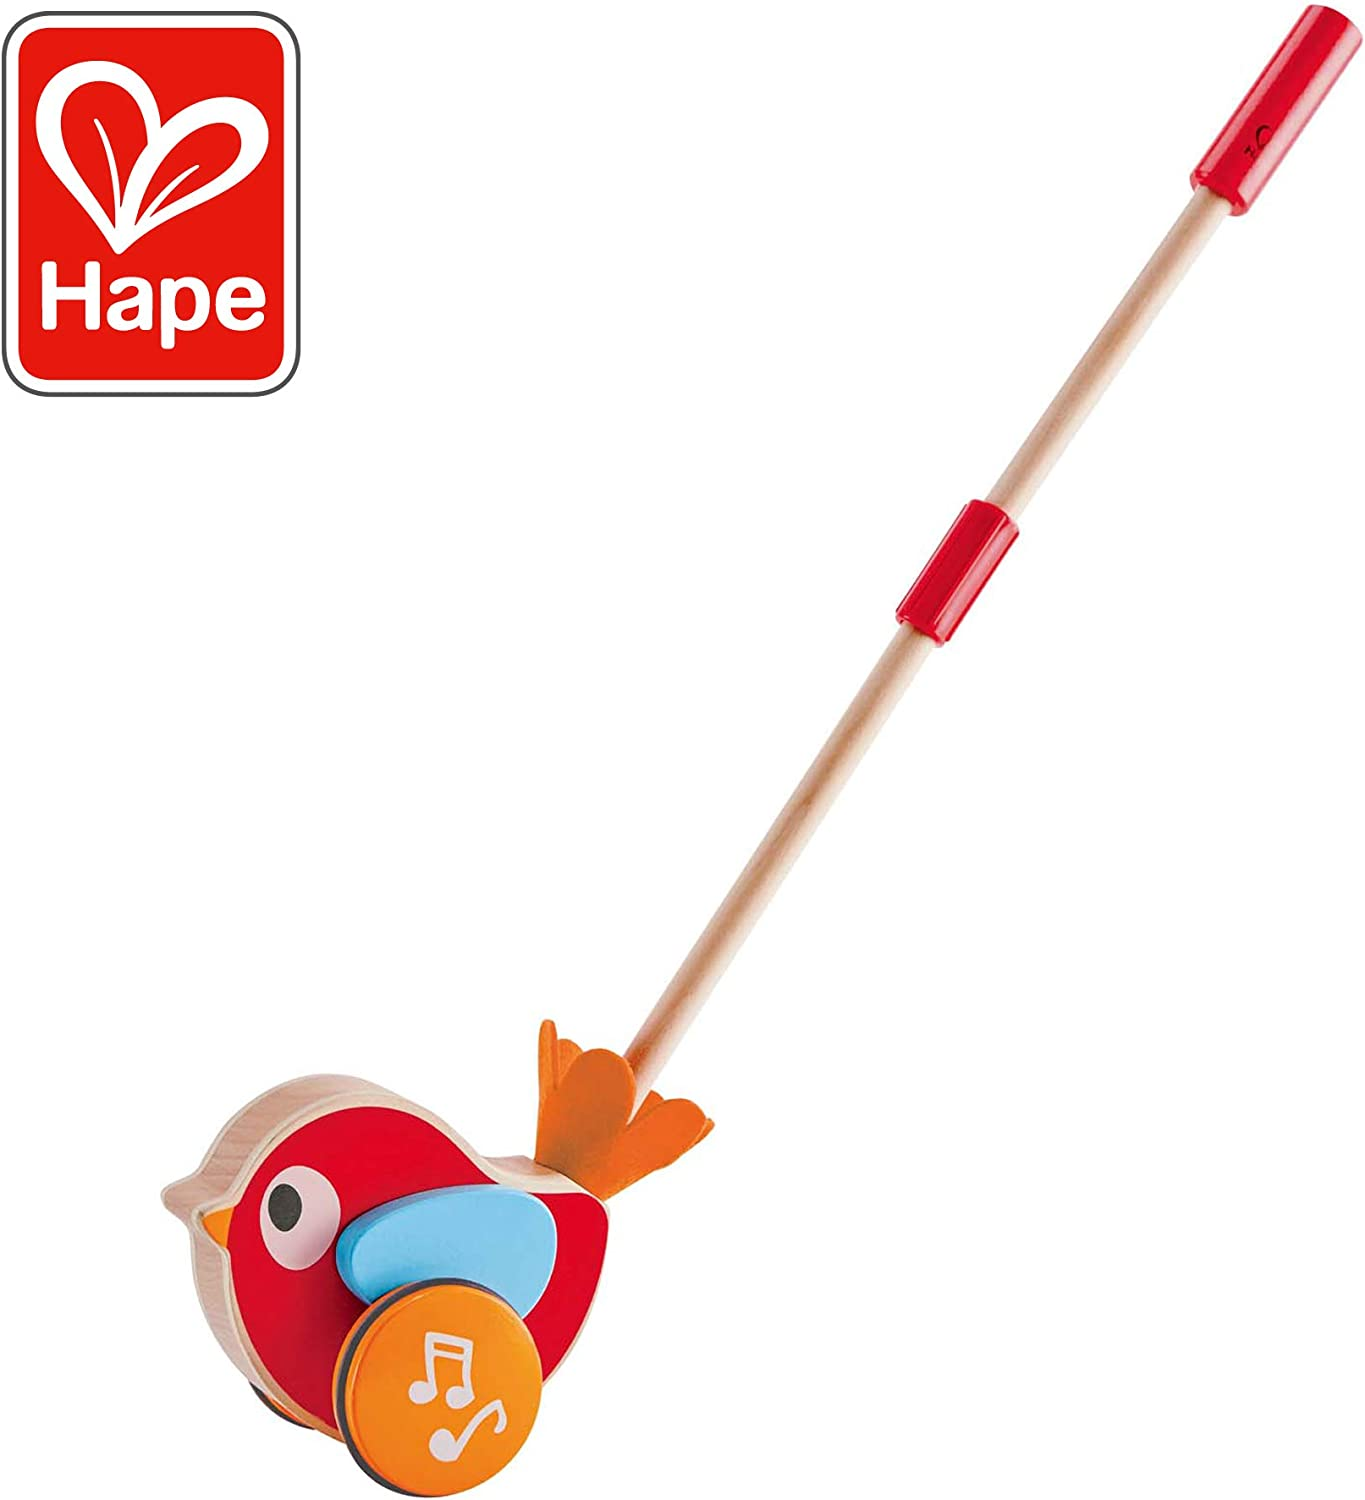 Hape Lilly Musical Push Along   Wooden Push Along Baby Walking Bird, Playful Kids Toy with Detachable Stick